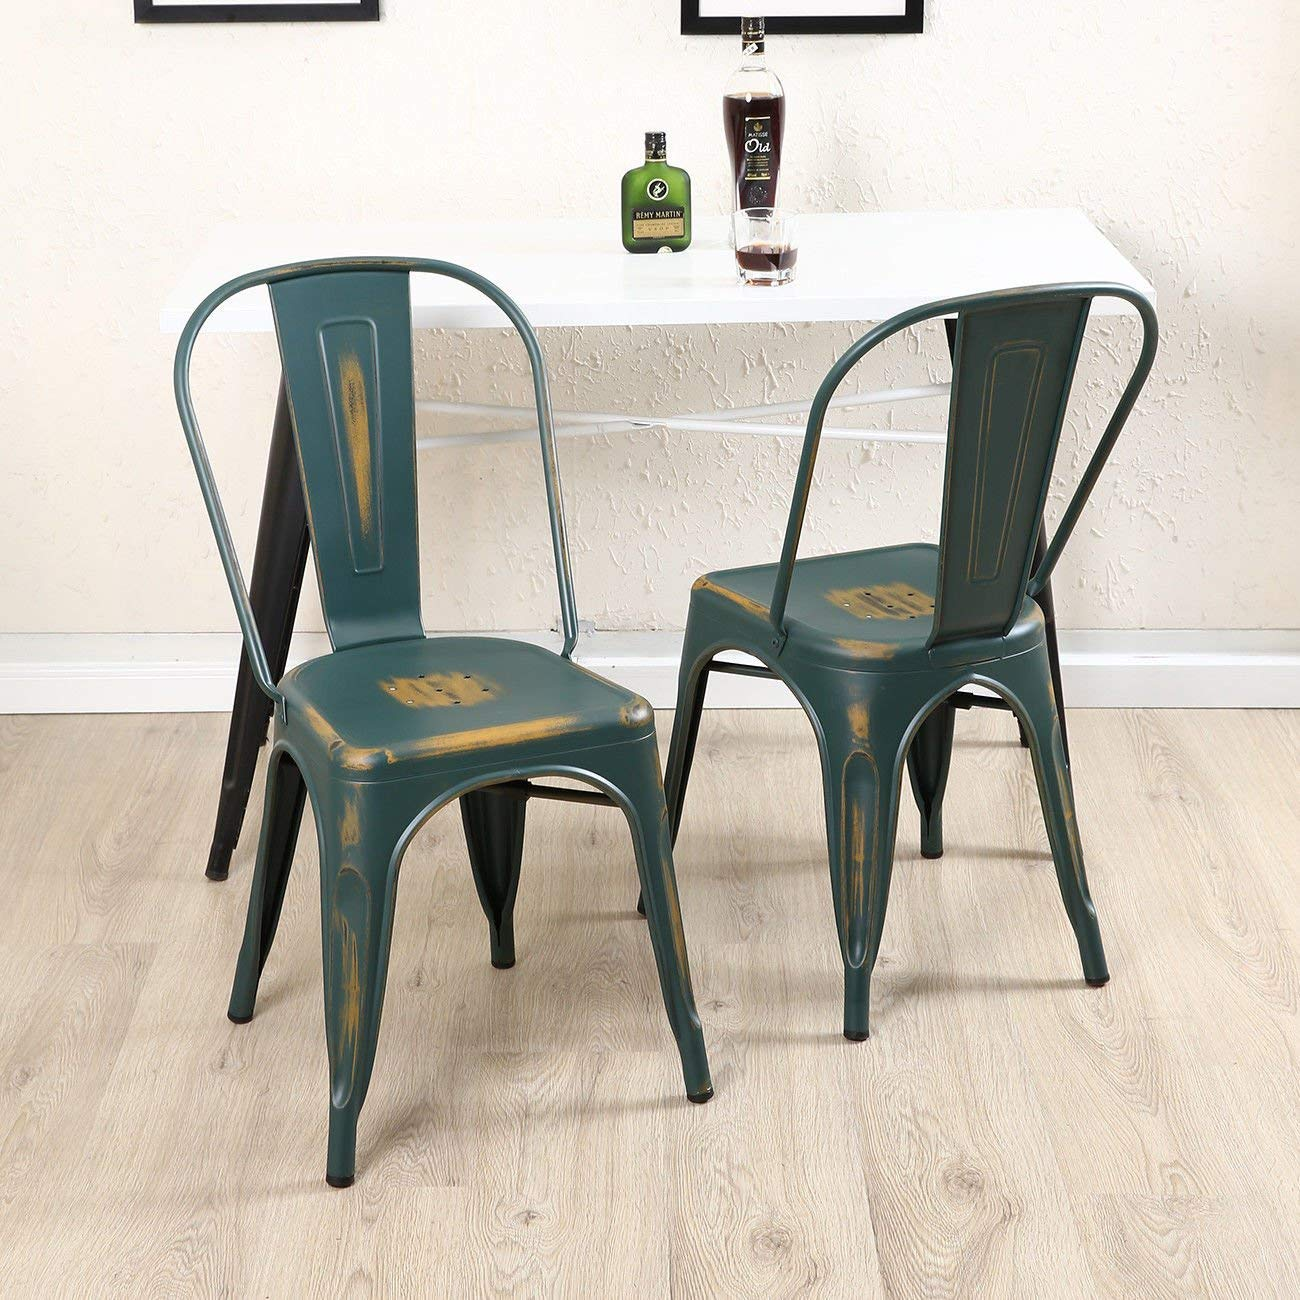 GHP 4-Pcs 330-Lbs Capacity Antique Blue Steel Bistro Dining Chairs with Backrest